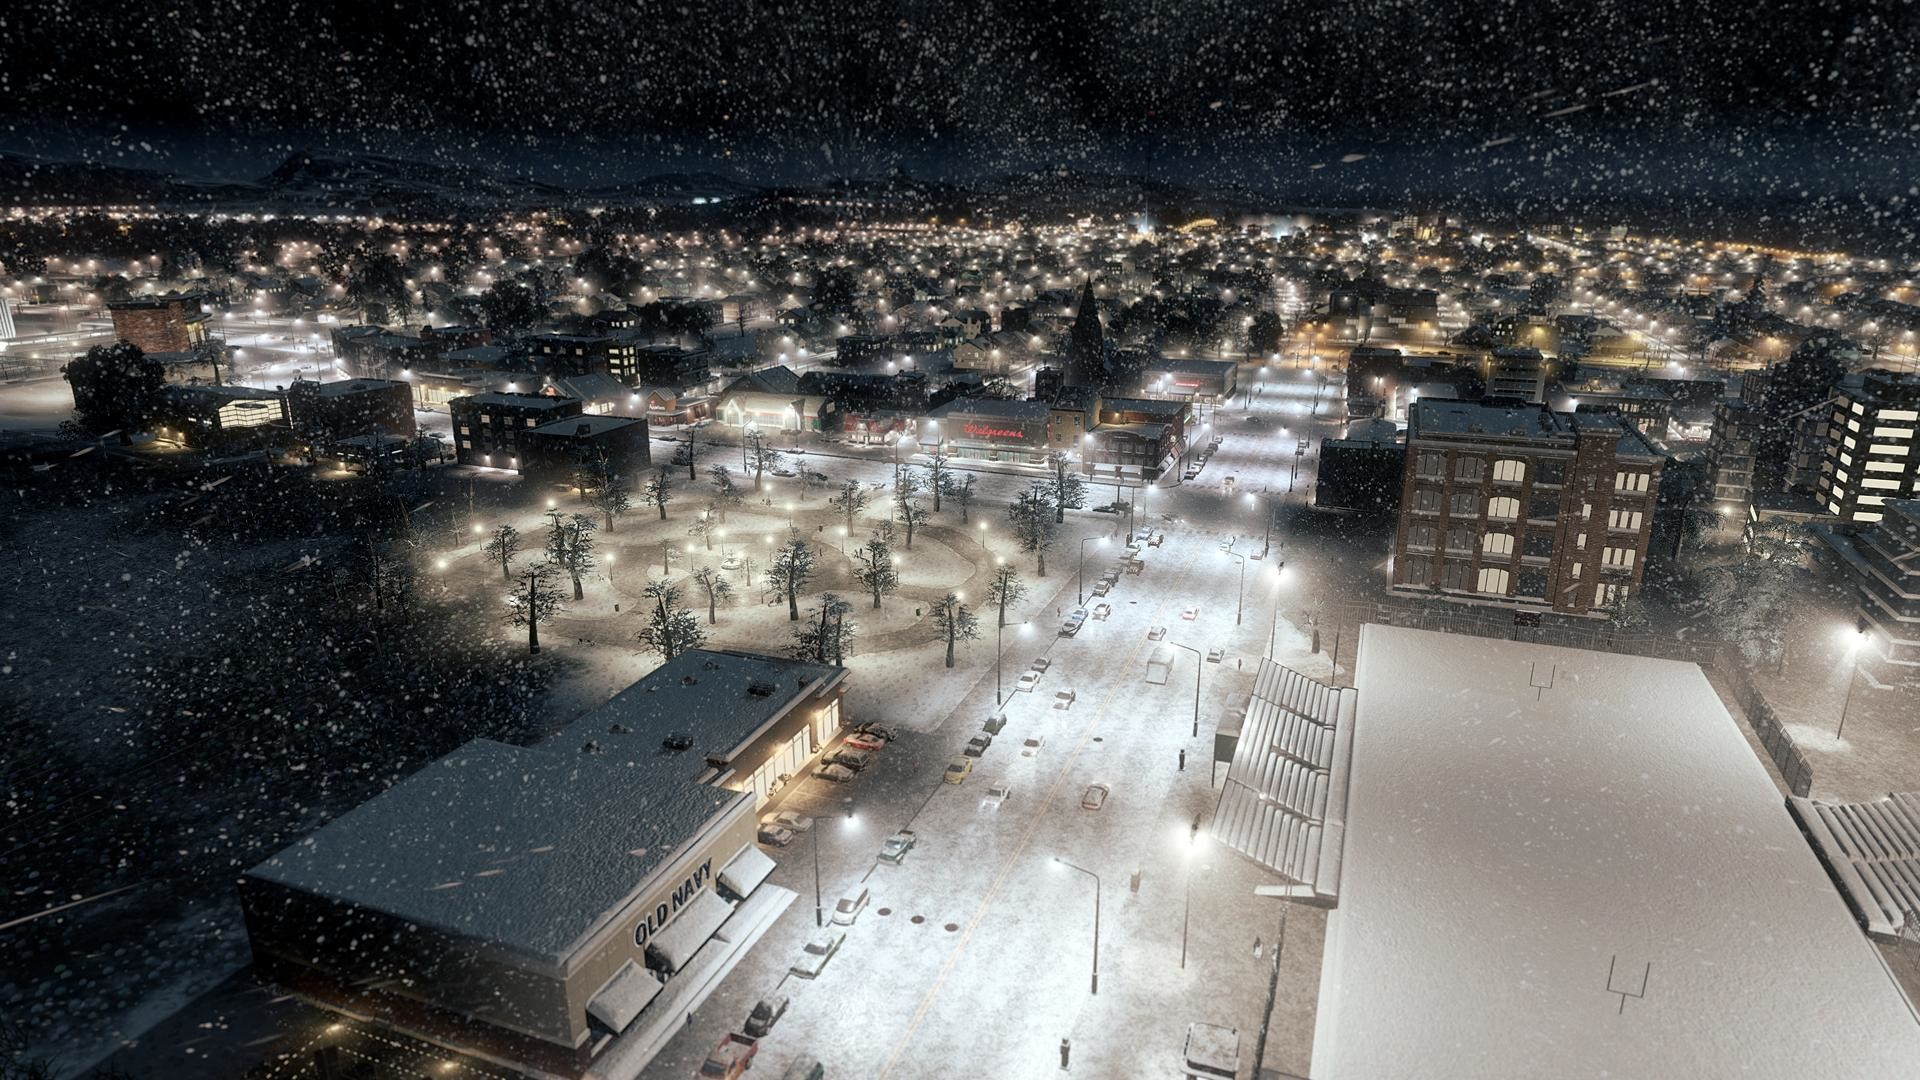 Snow Falling on City Wallpaper